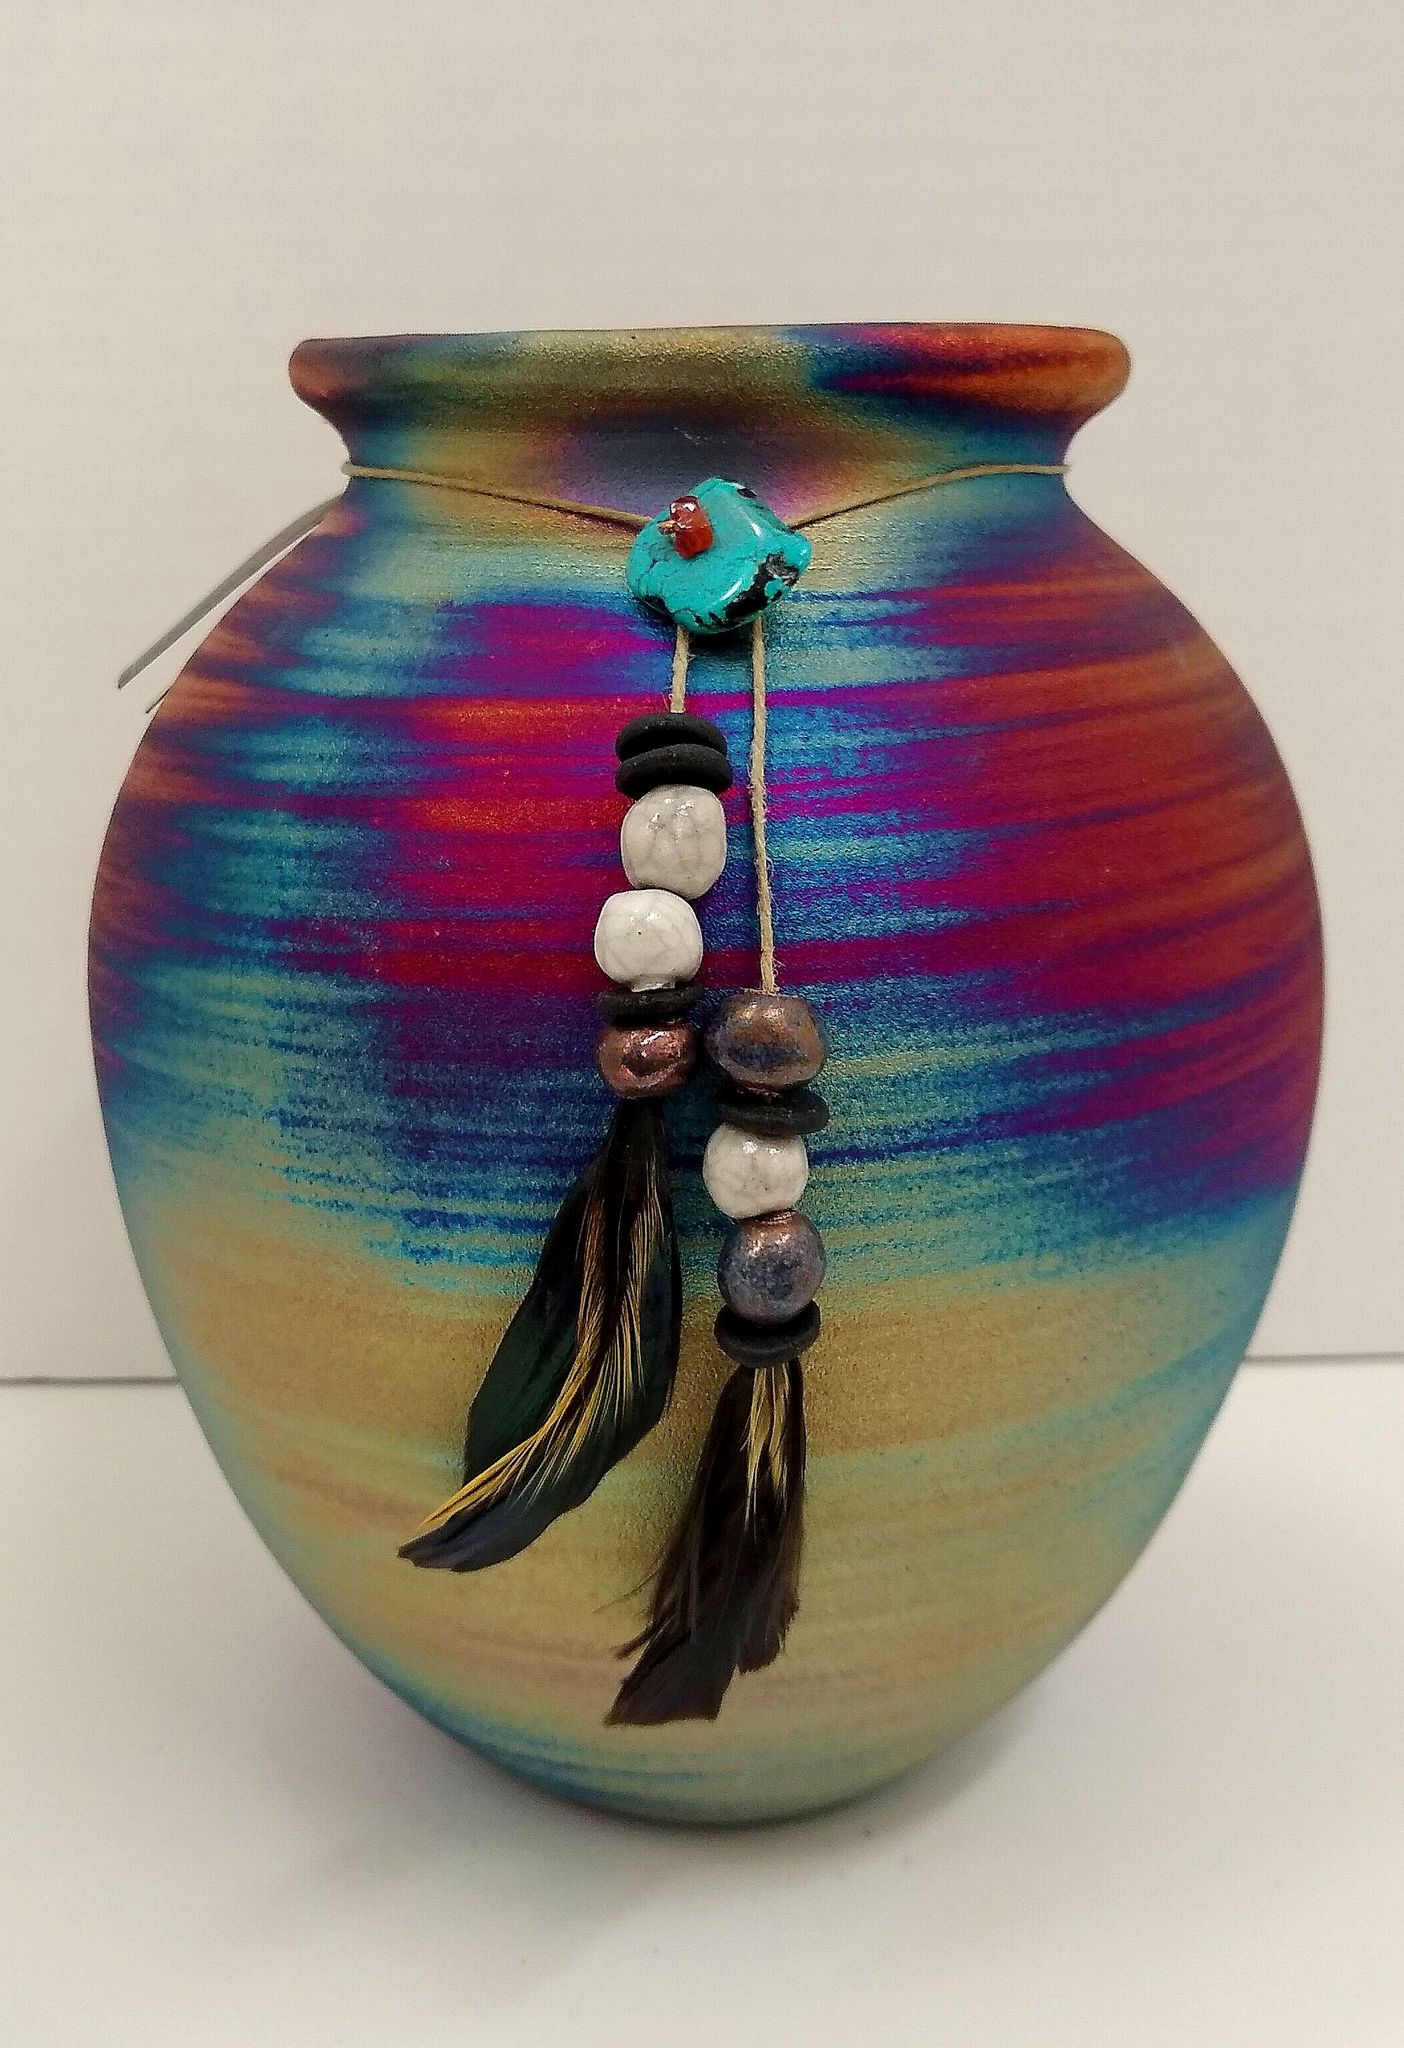 Welcome to our Hand-Made Raku Pottery Collection